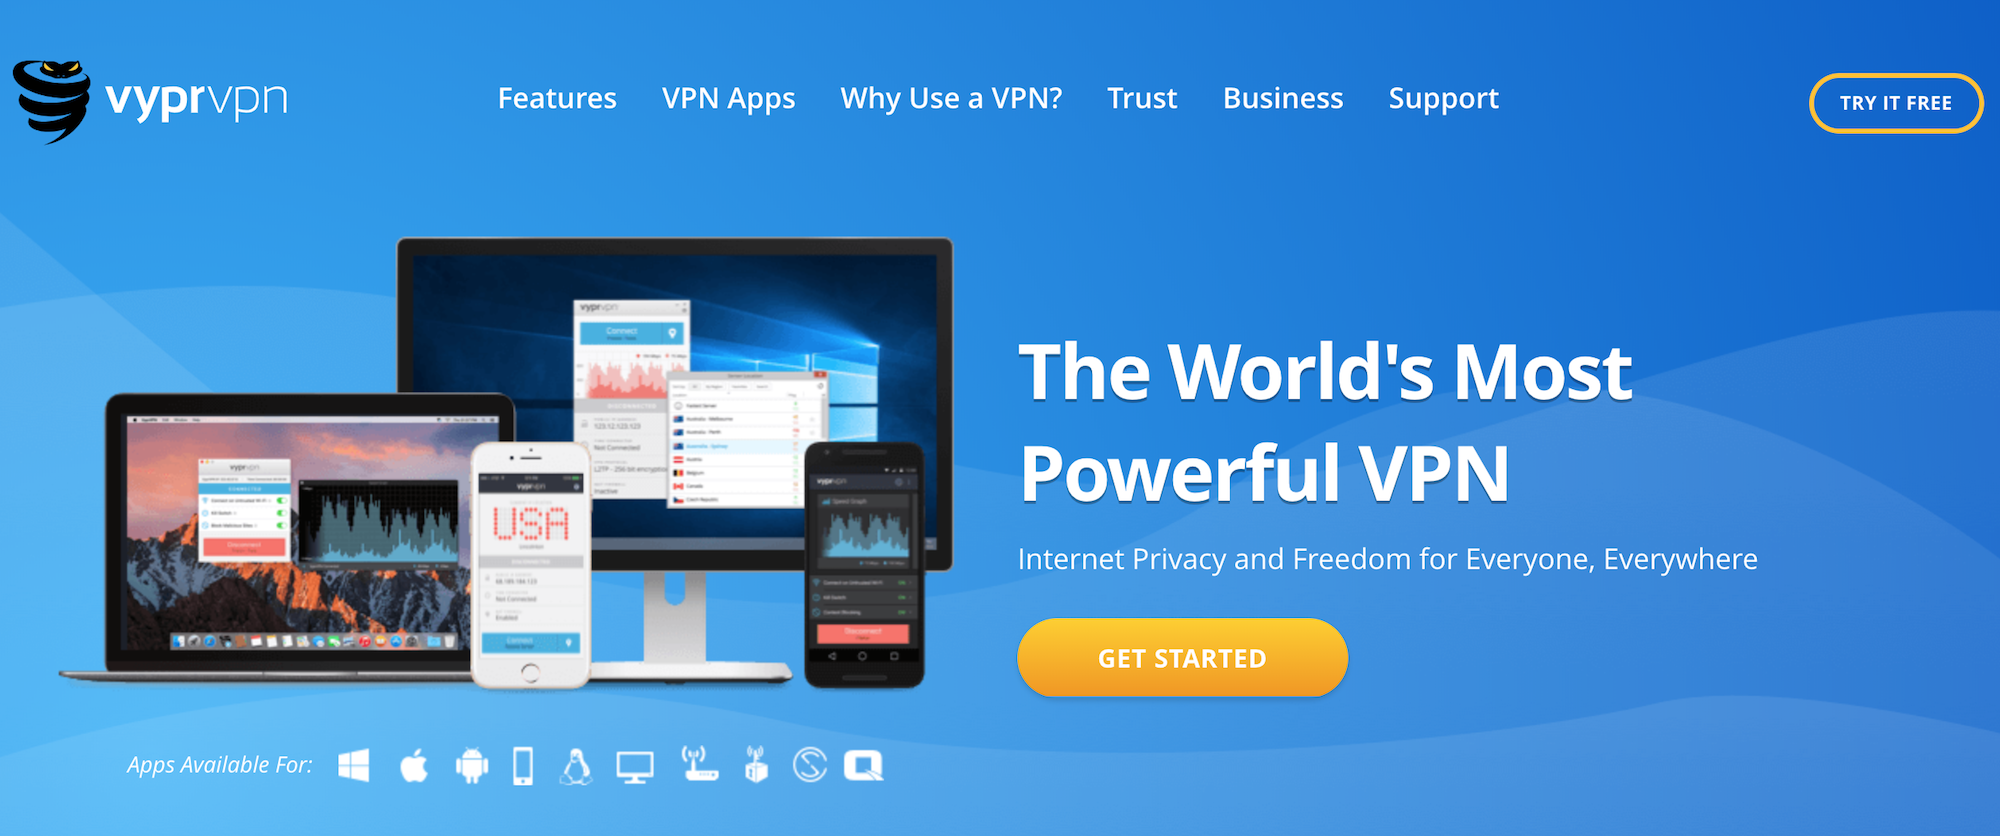 Vypr VPN Review 2018